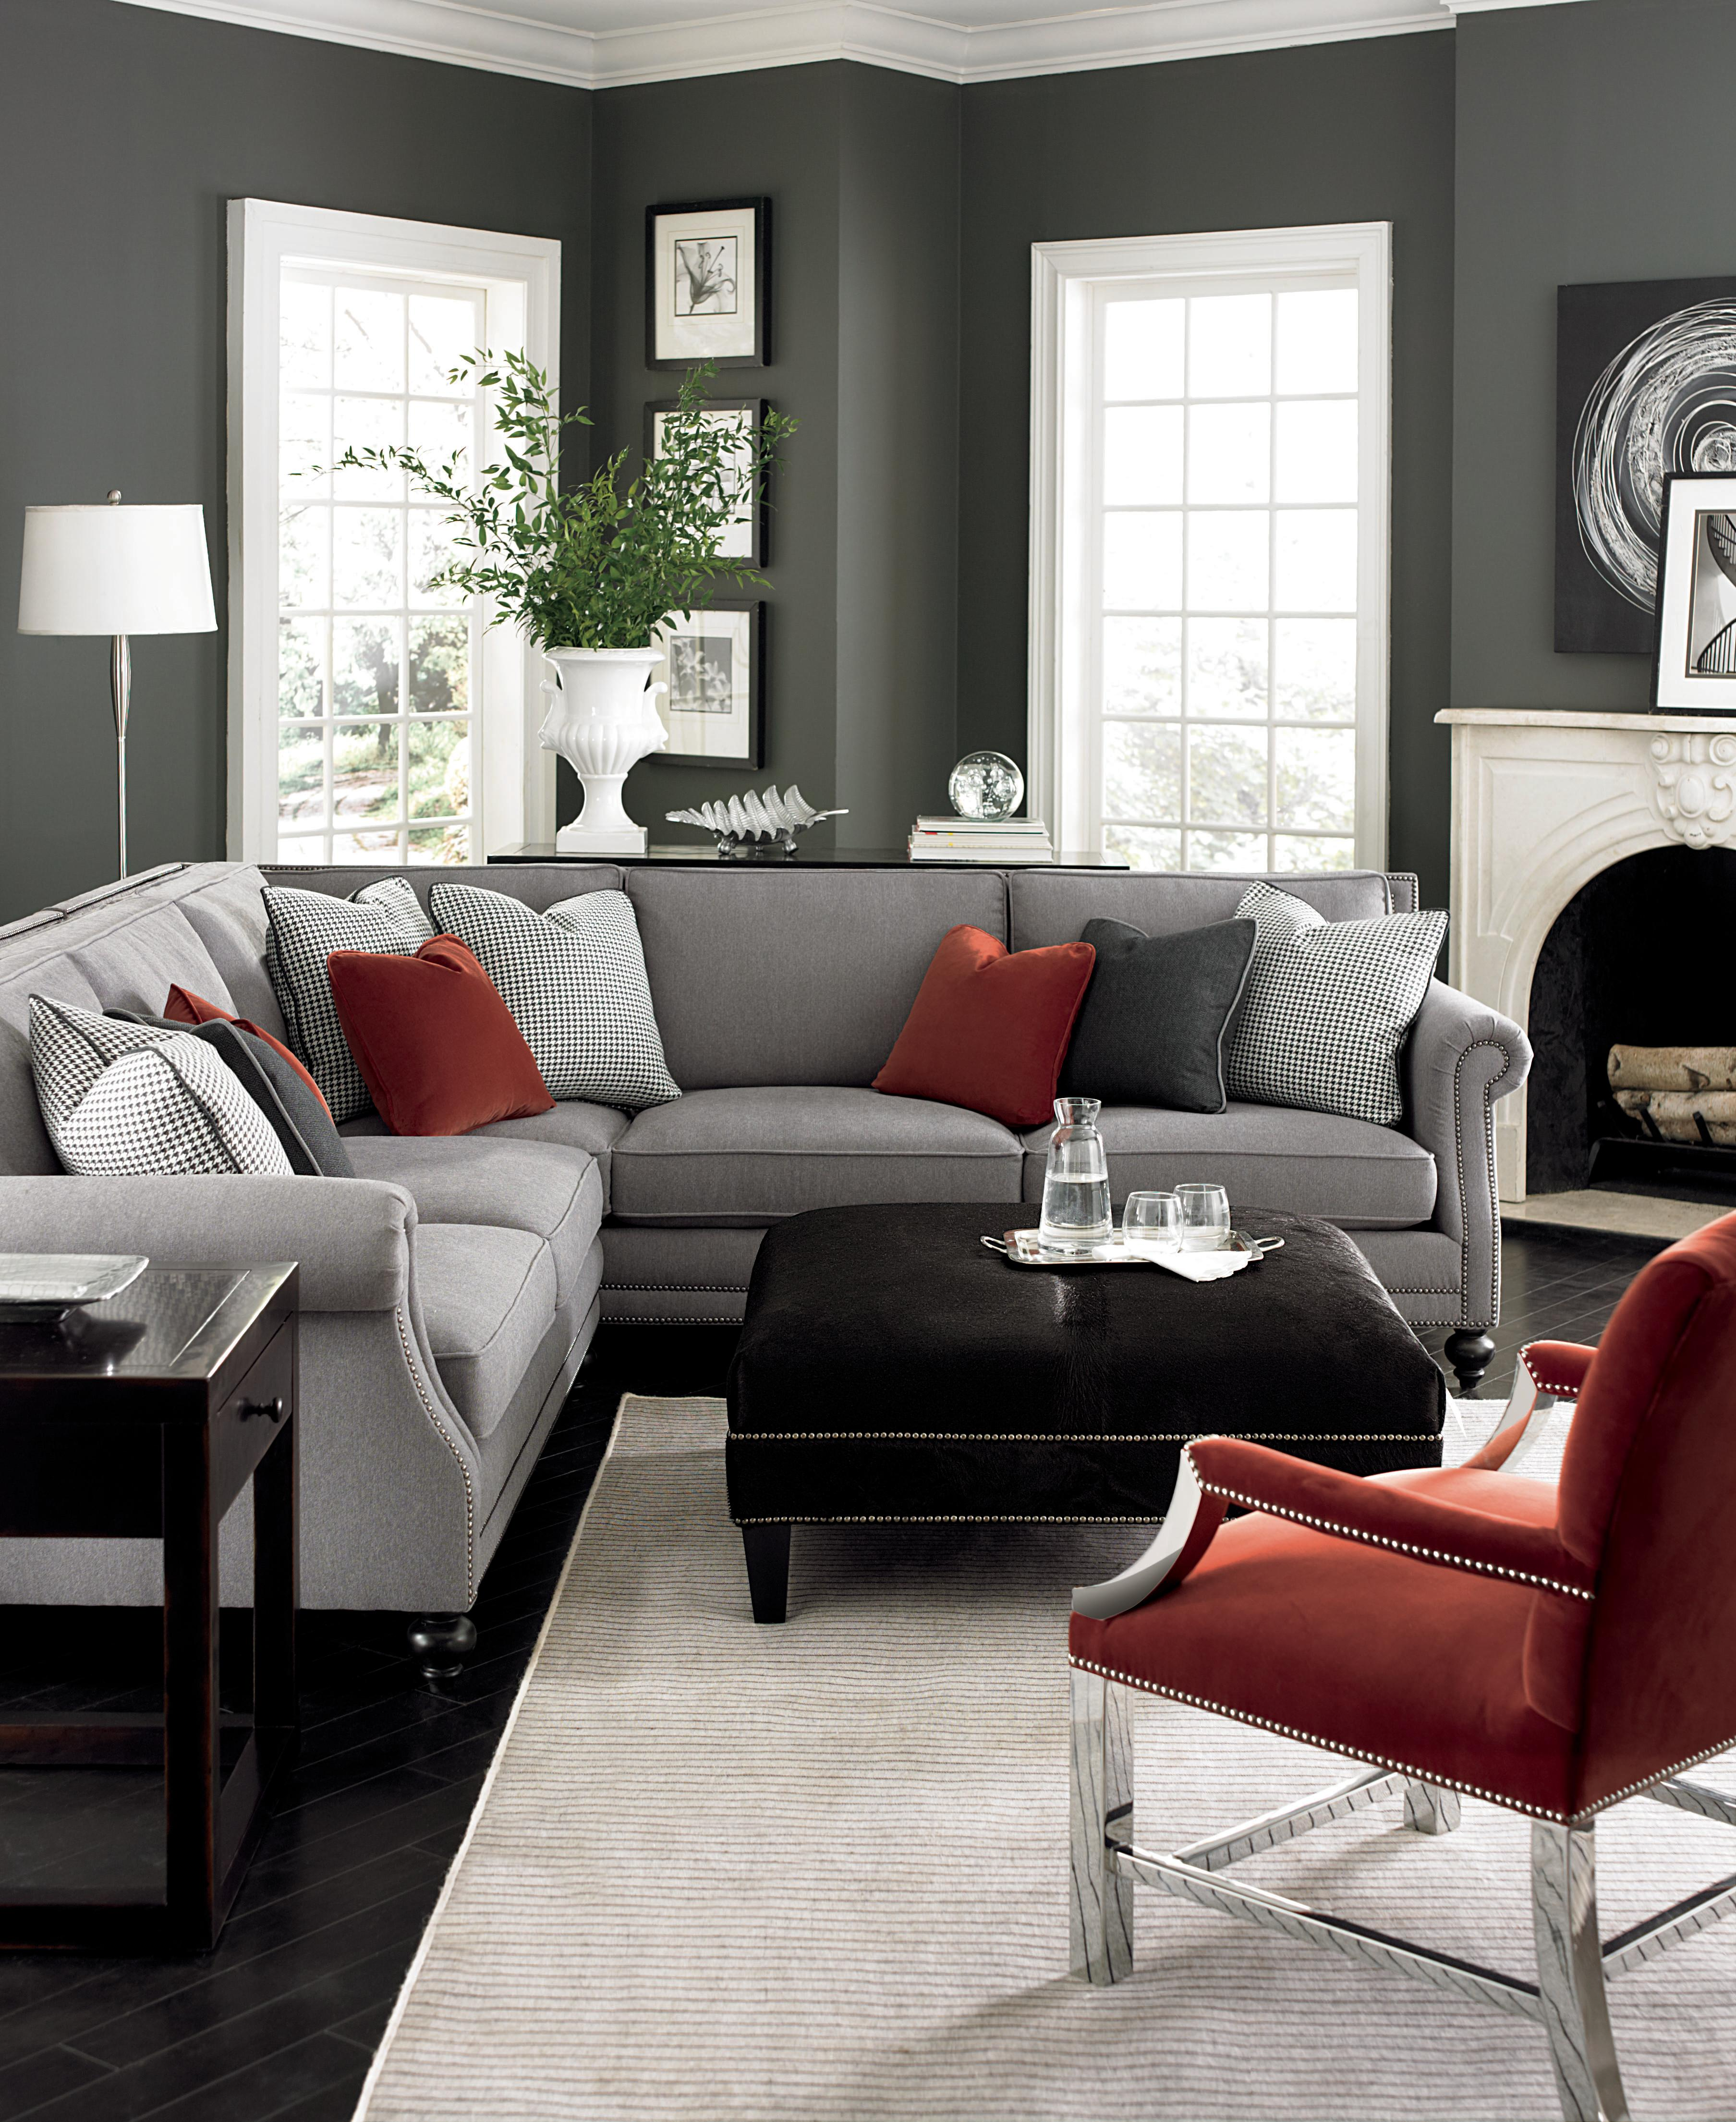 Chez Del Home Furnishing Interior Design Coupons Near Me In Akron 8coupons